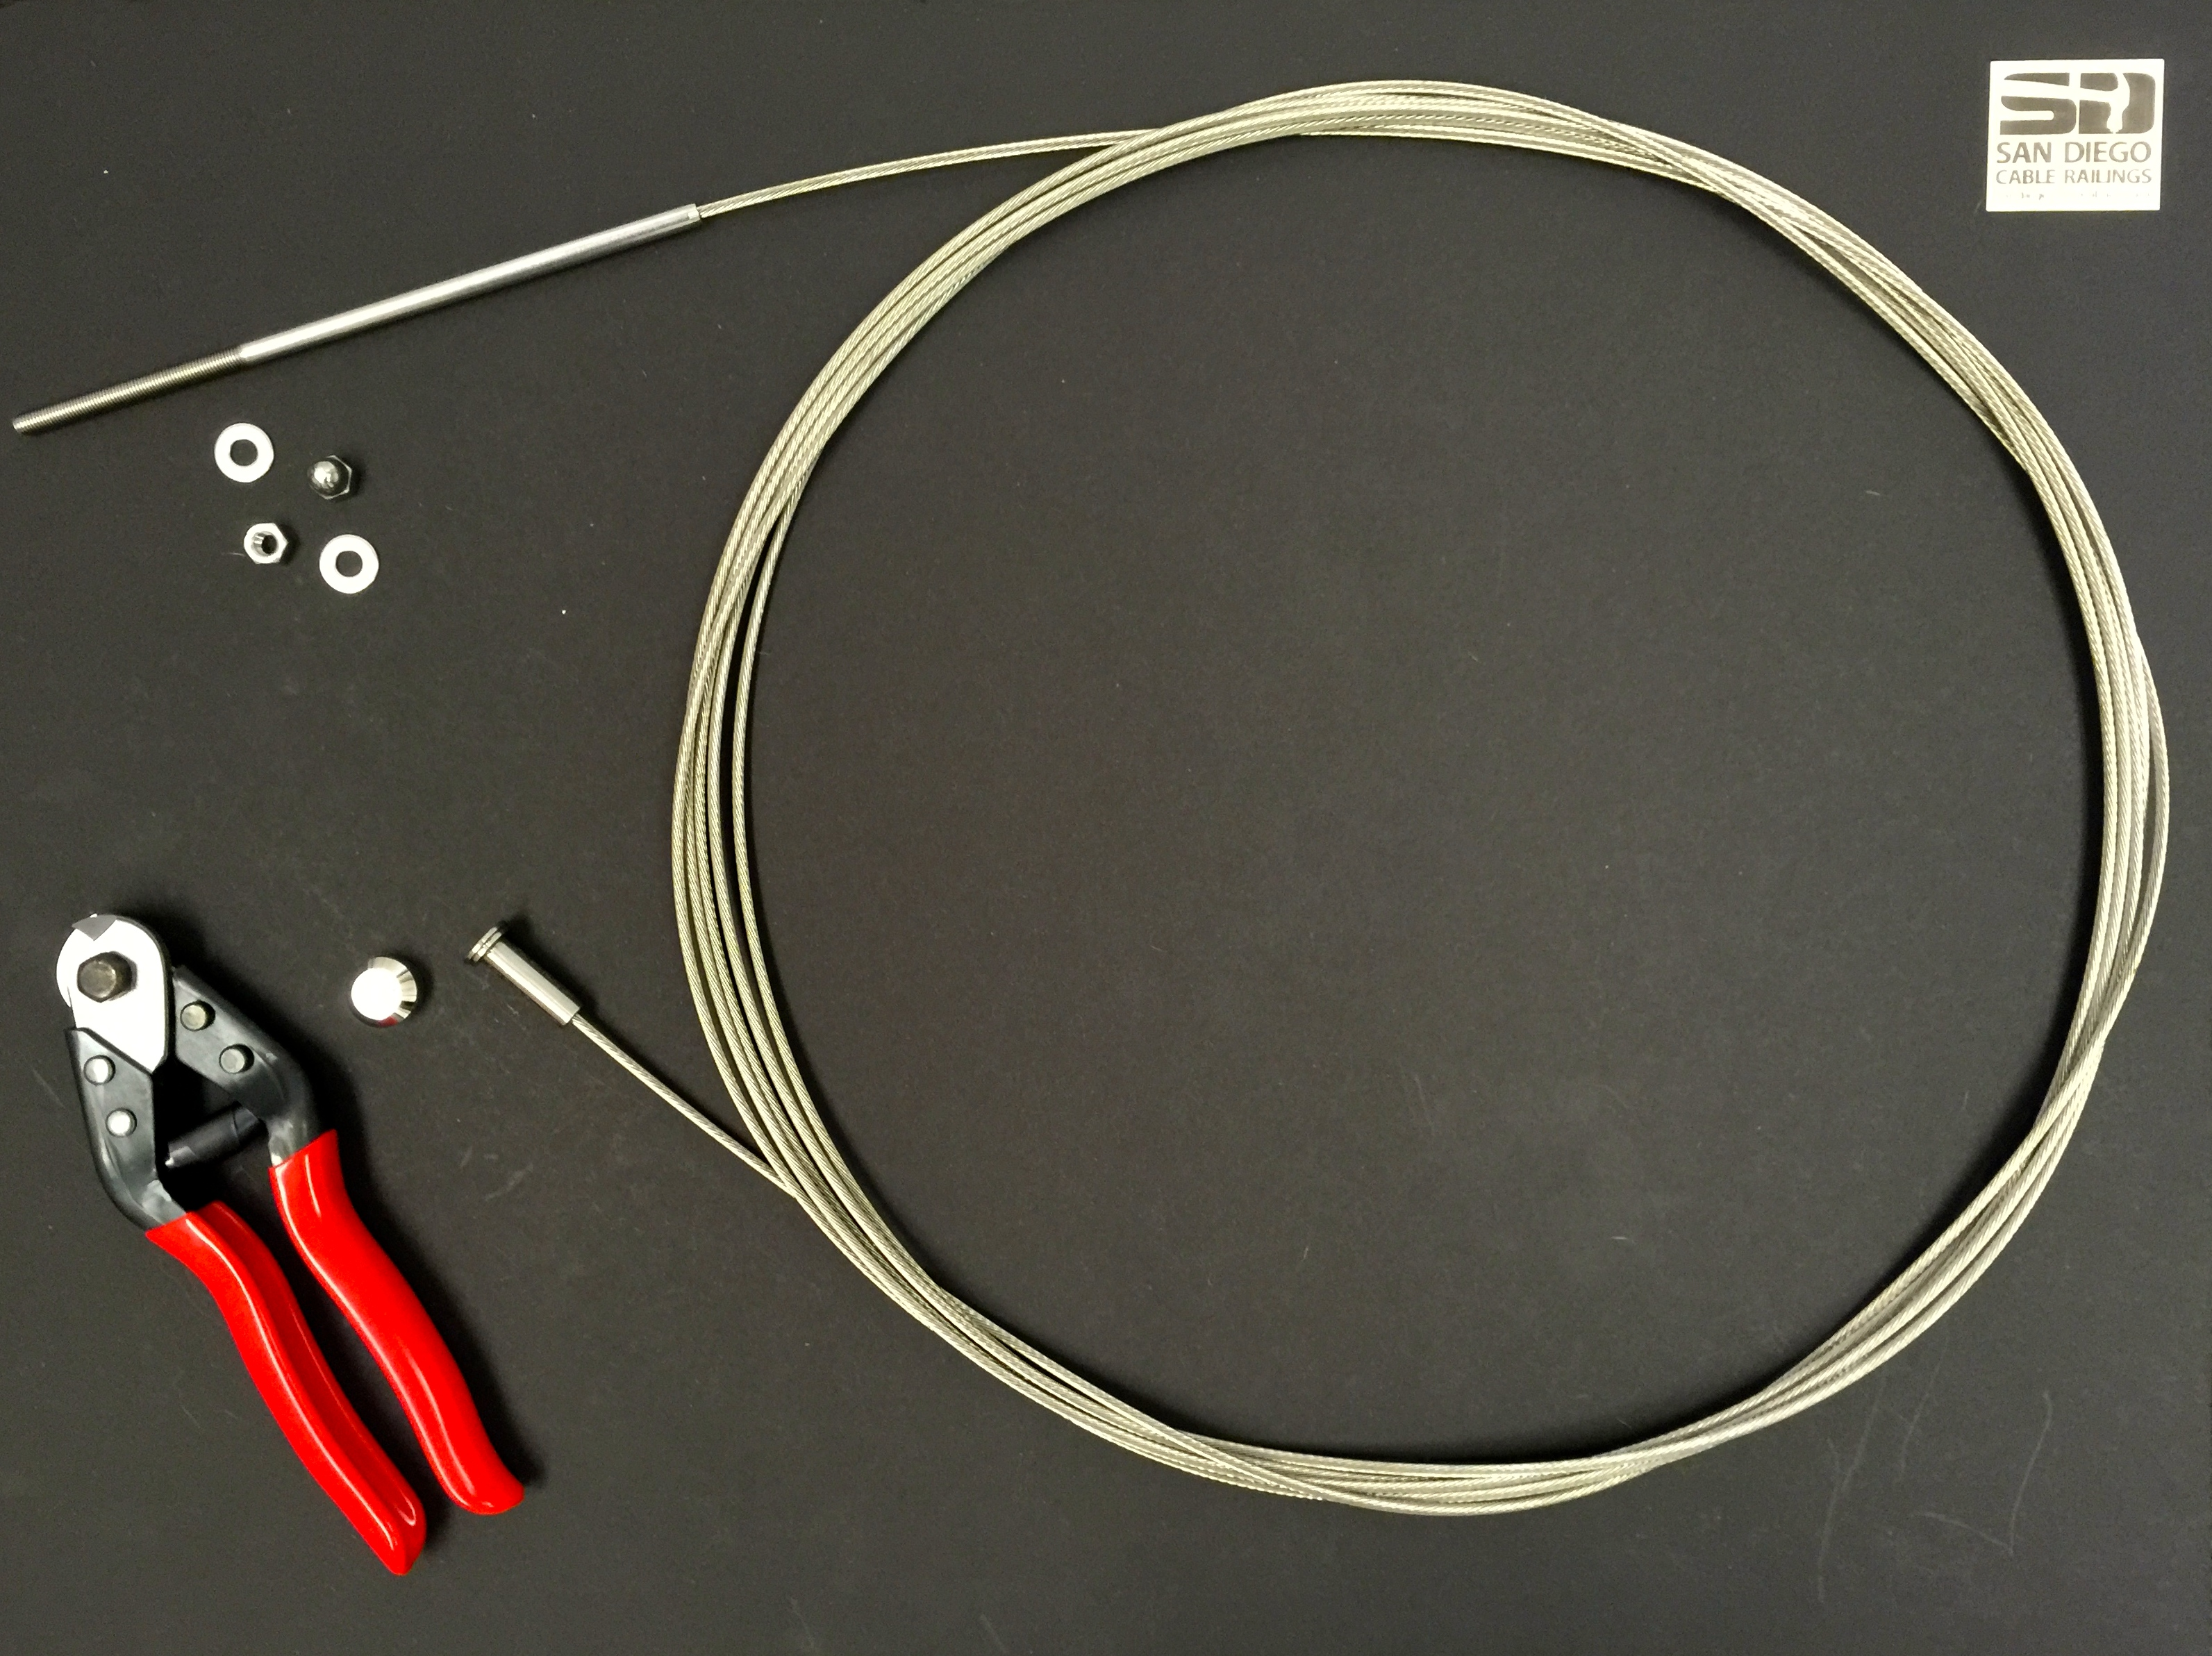 Diy cable assemblies san diego cable railings diy cable assembly 1 wood posts solutioingenieria Images